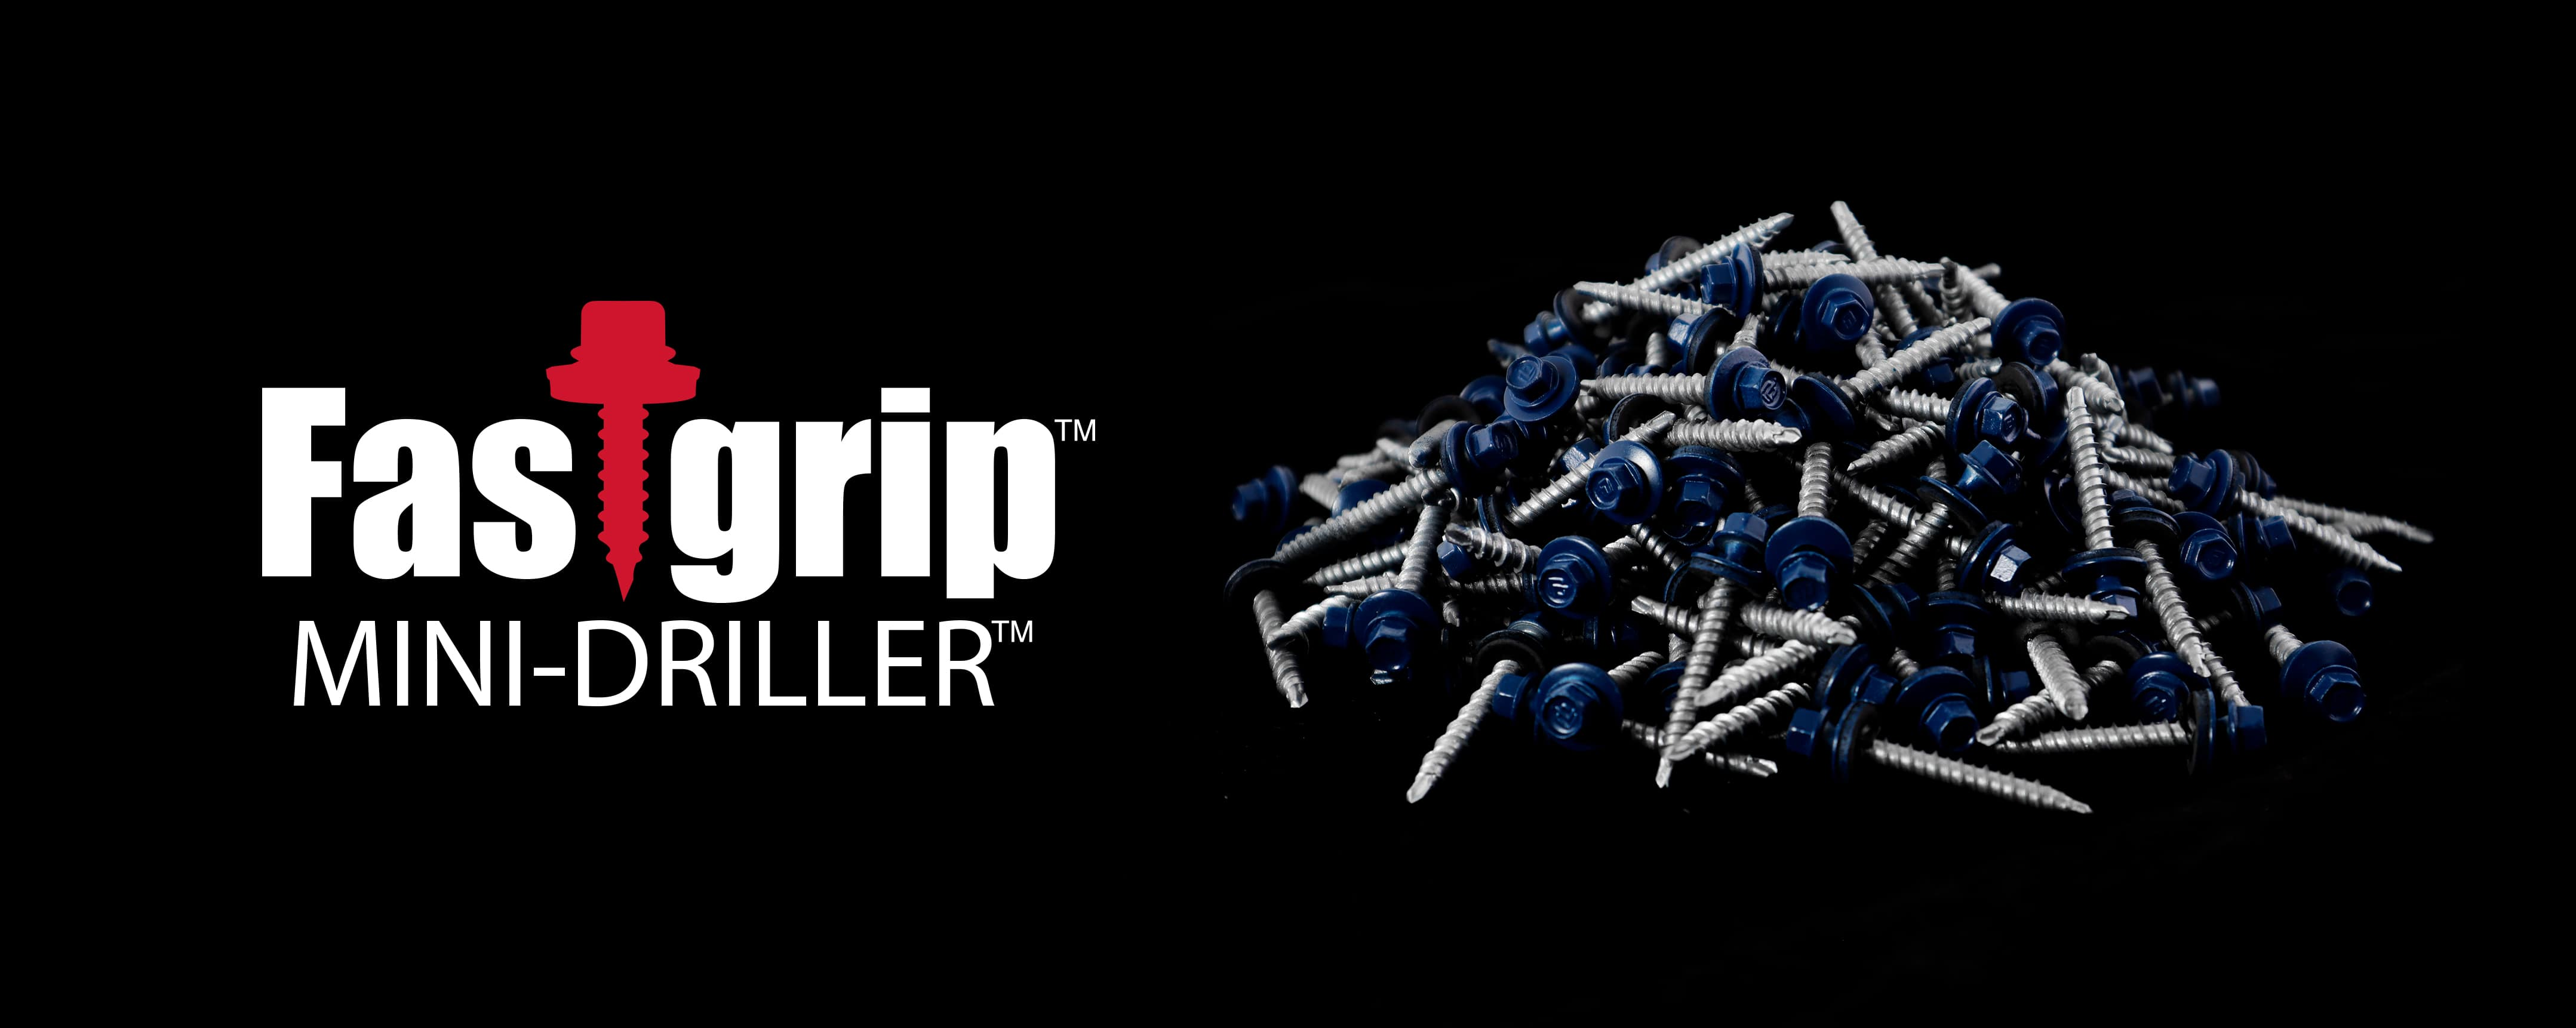 Fastgrip Mini-Driller roofing screw